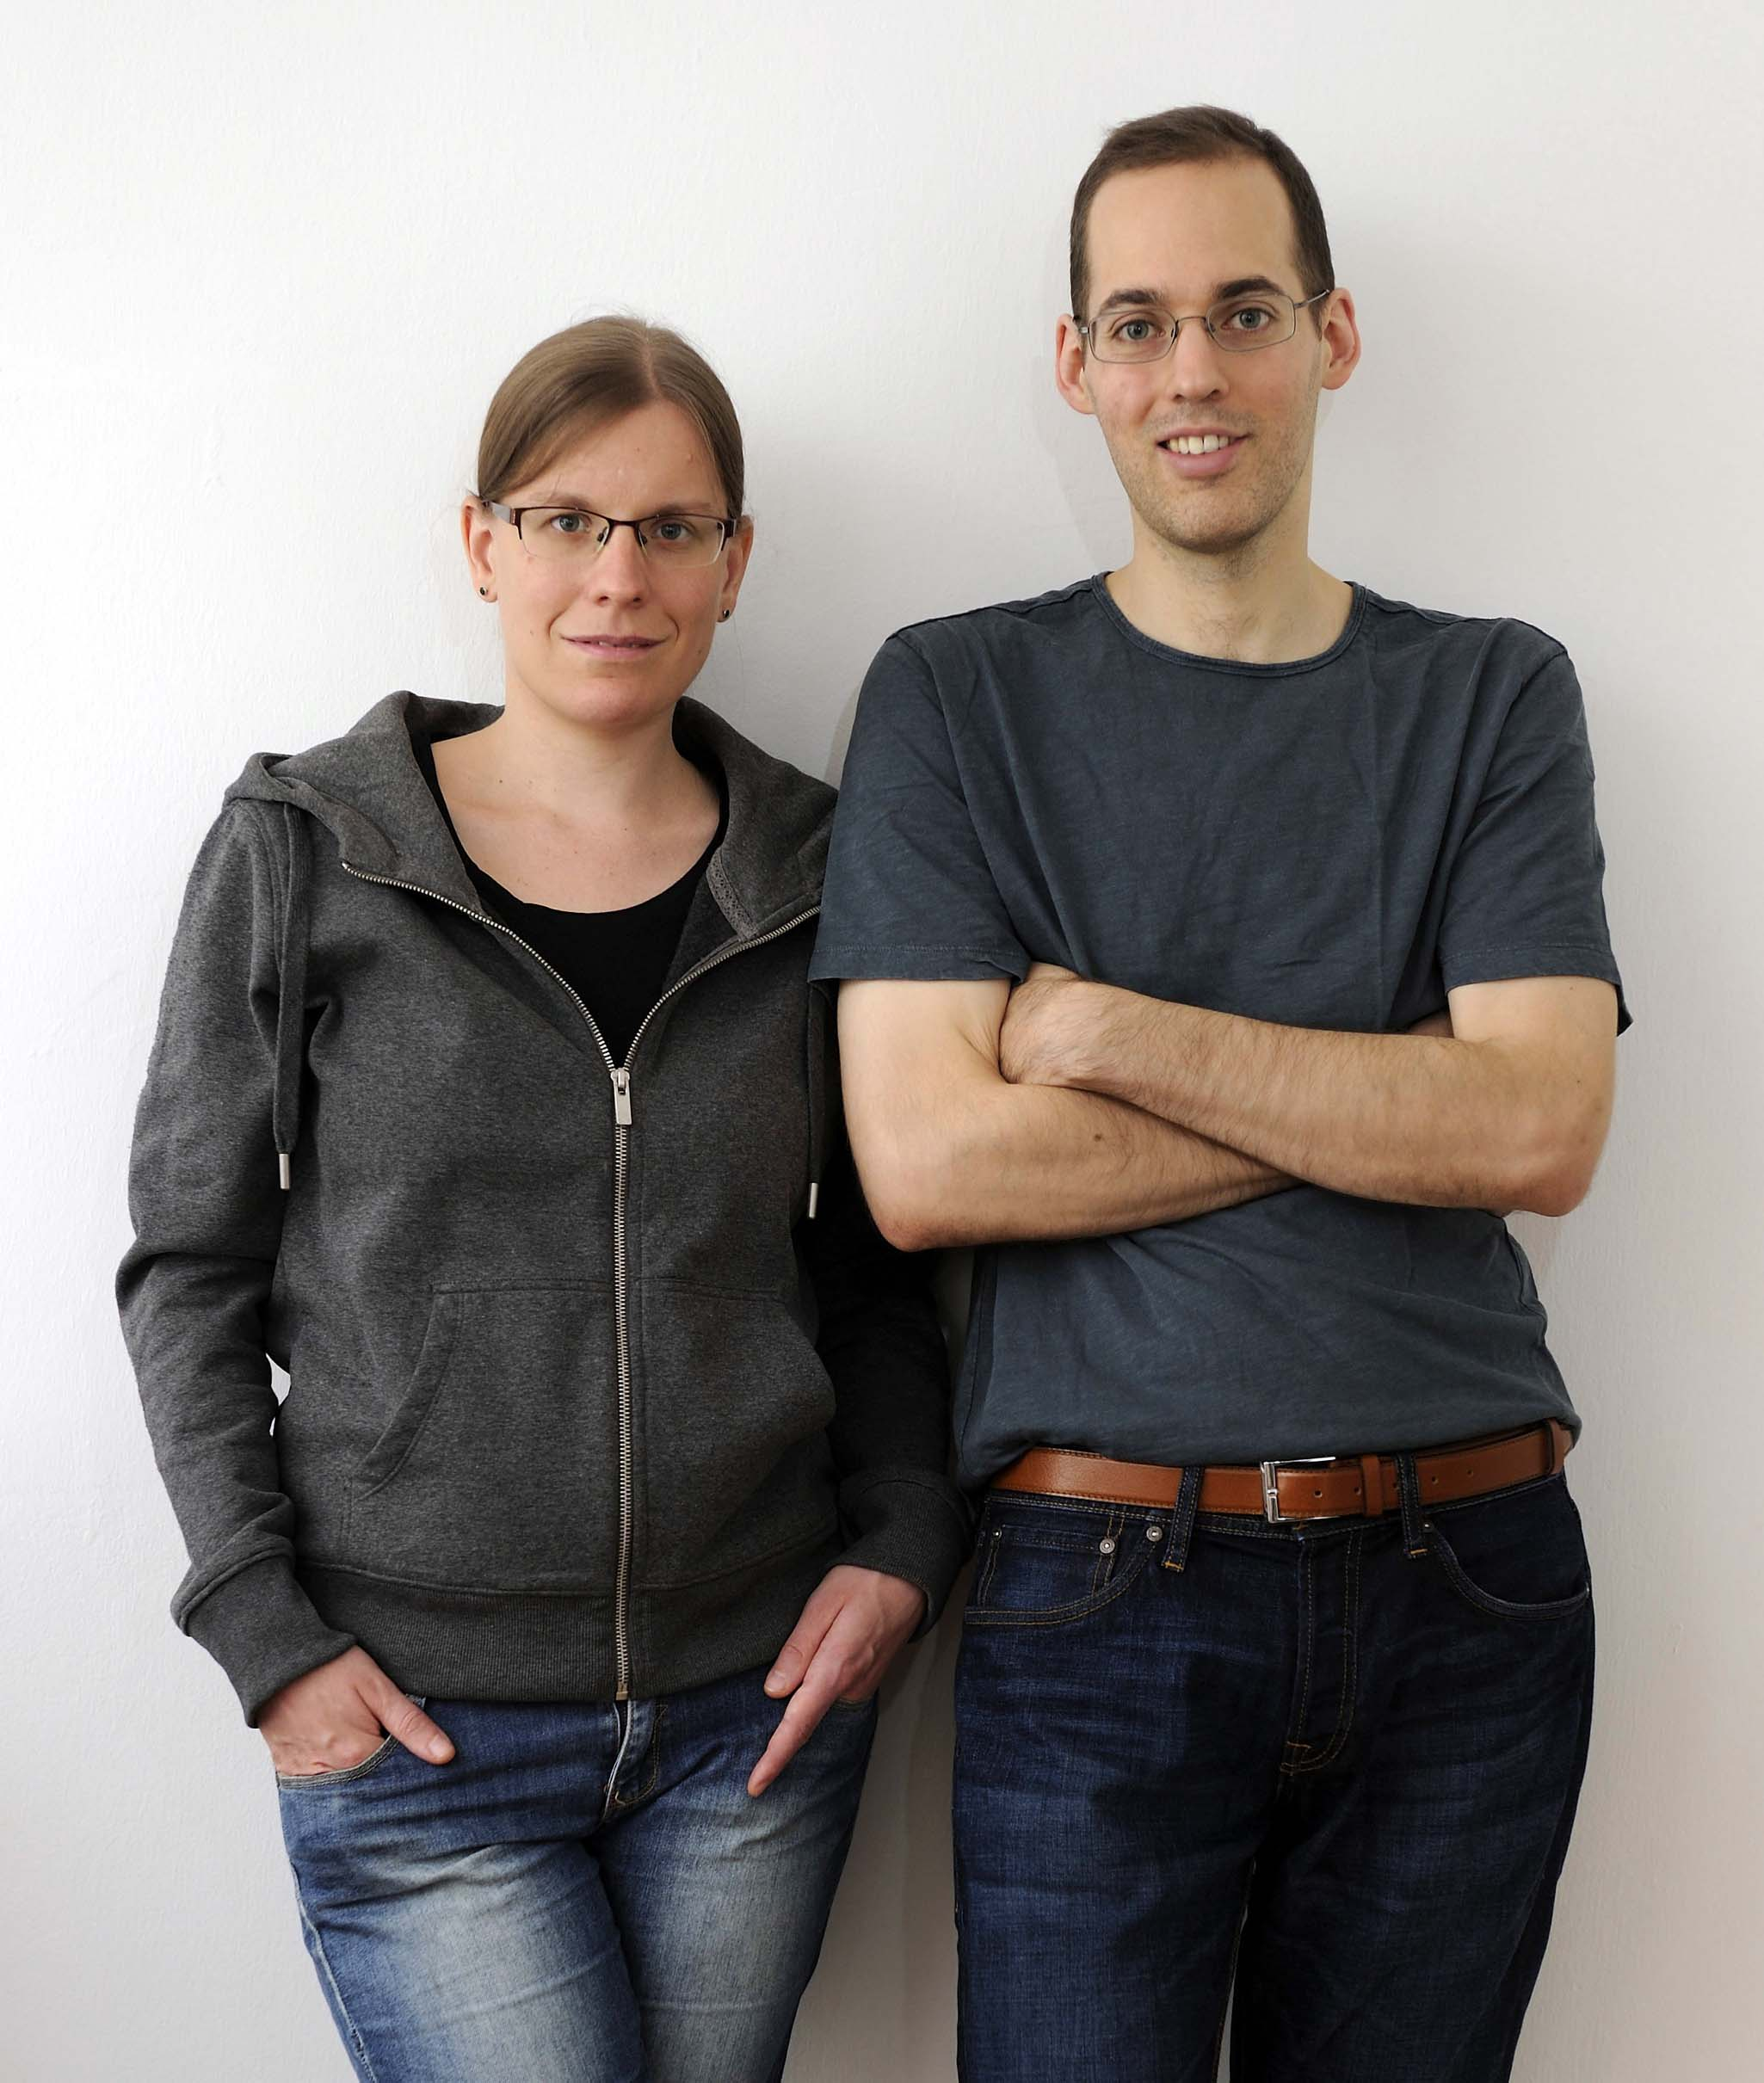 Thomas and Ann-Katrin in casual outfit standing in front of white wall